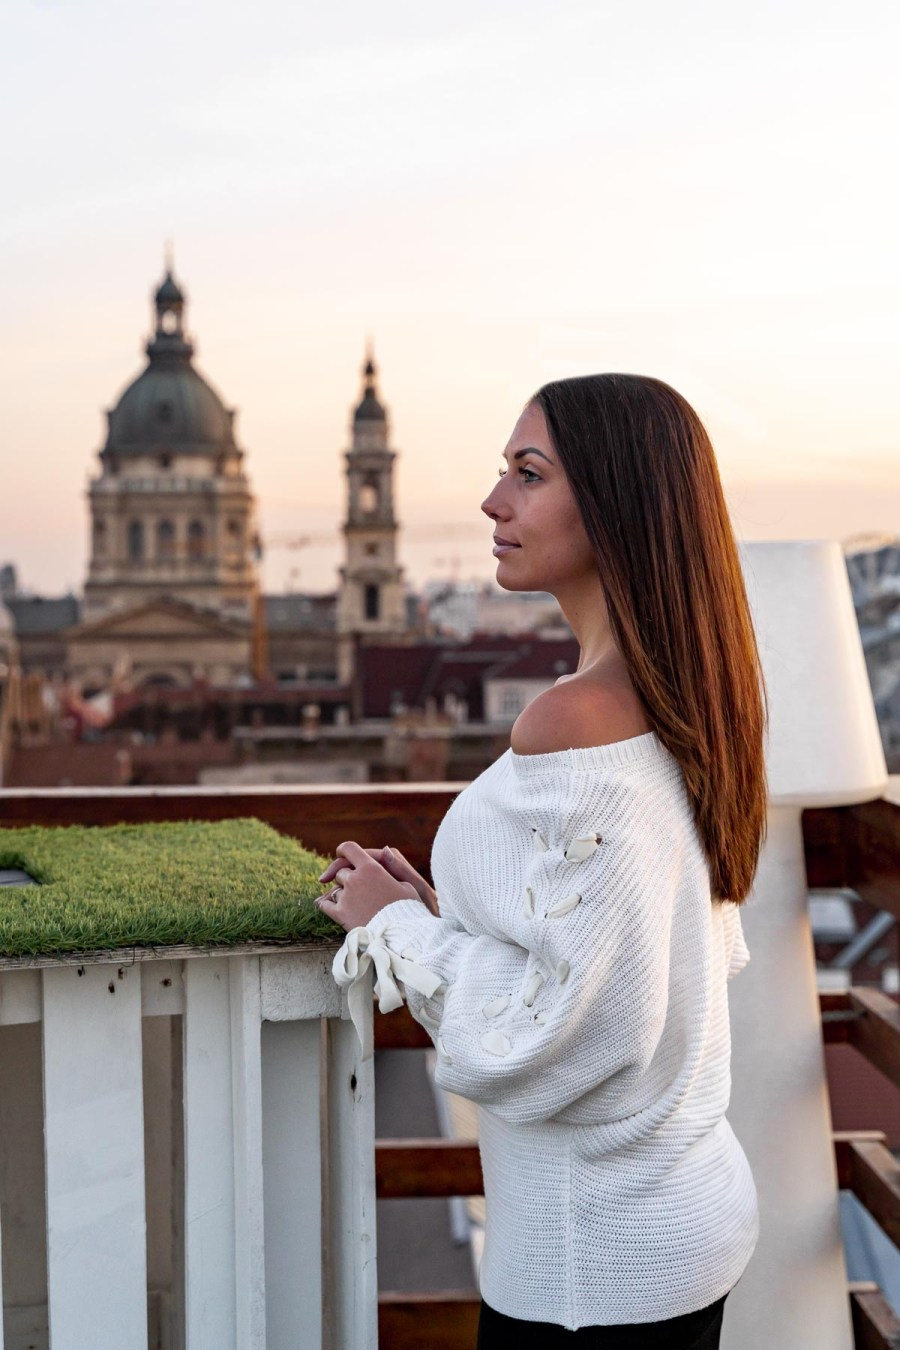 Girl in a white sweater standing at the Intermezzo Roof Terrace, looking at the St. Stephen's Basilica